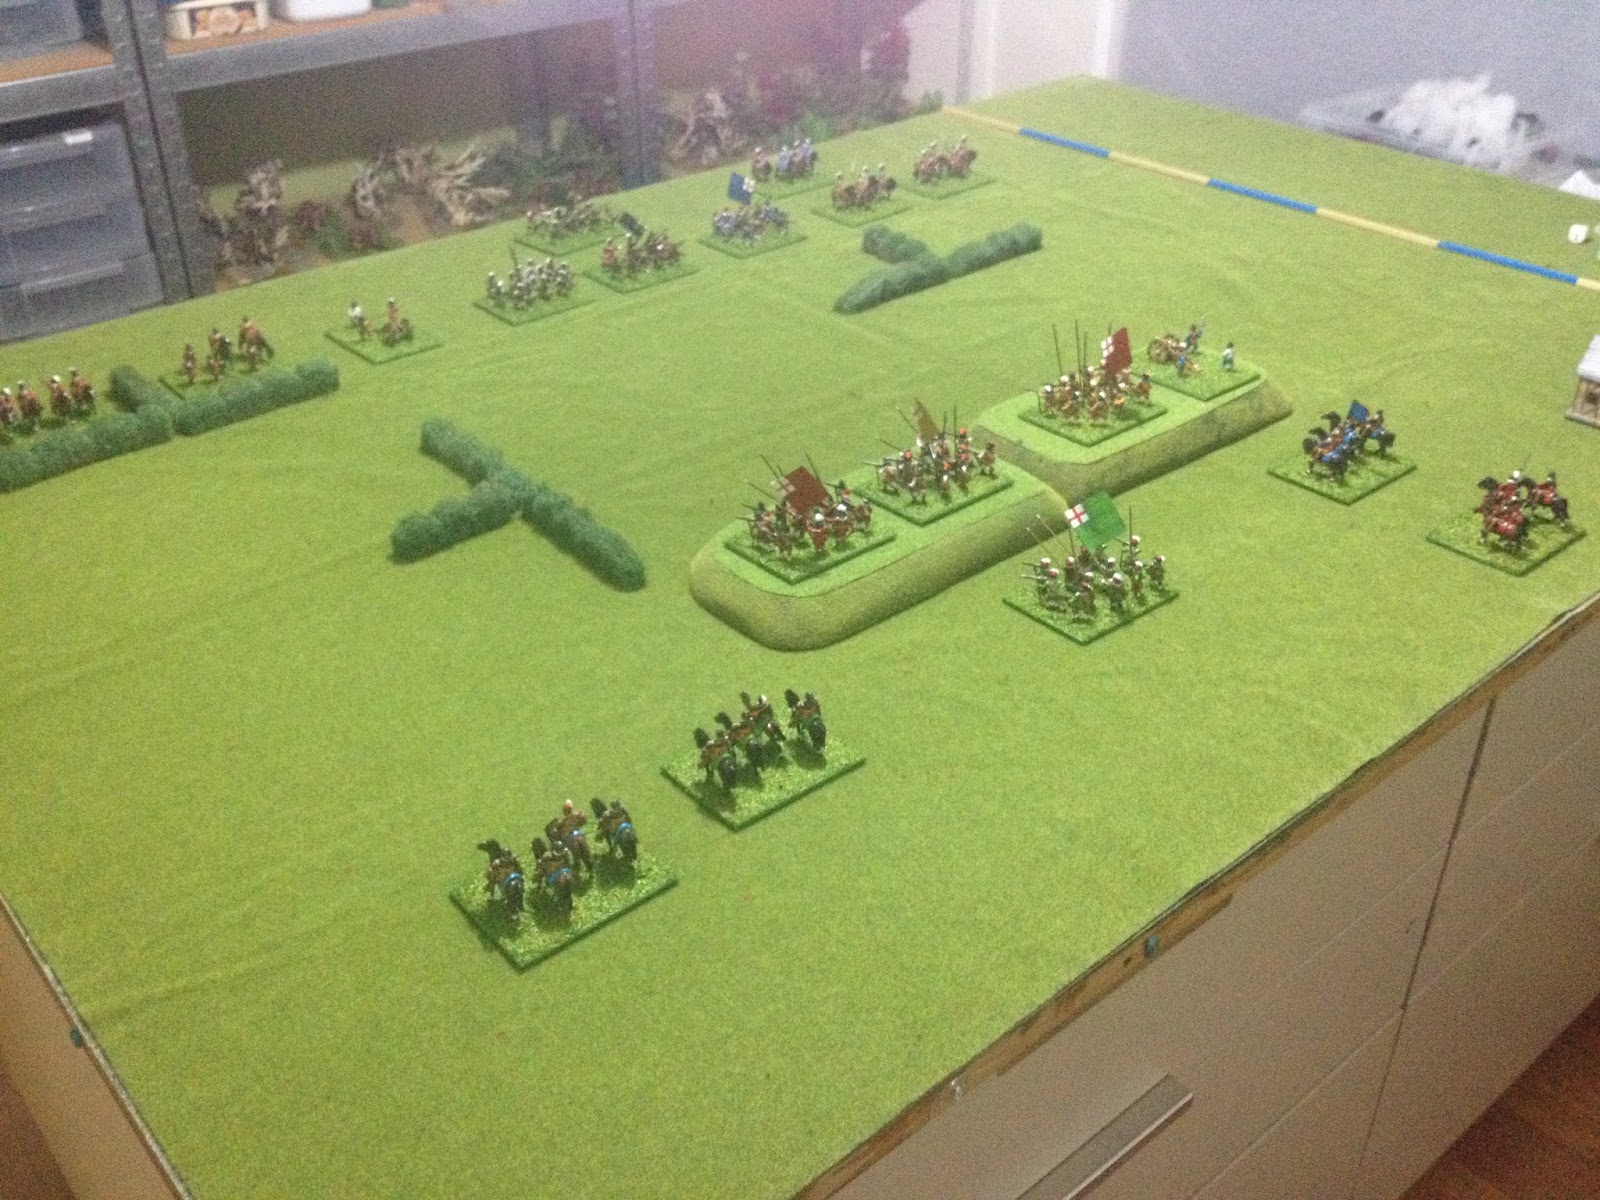 Grid based wargaming - but not always: English Civil War game